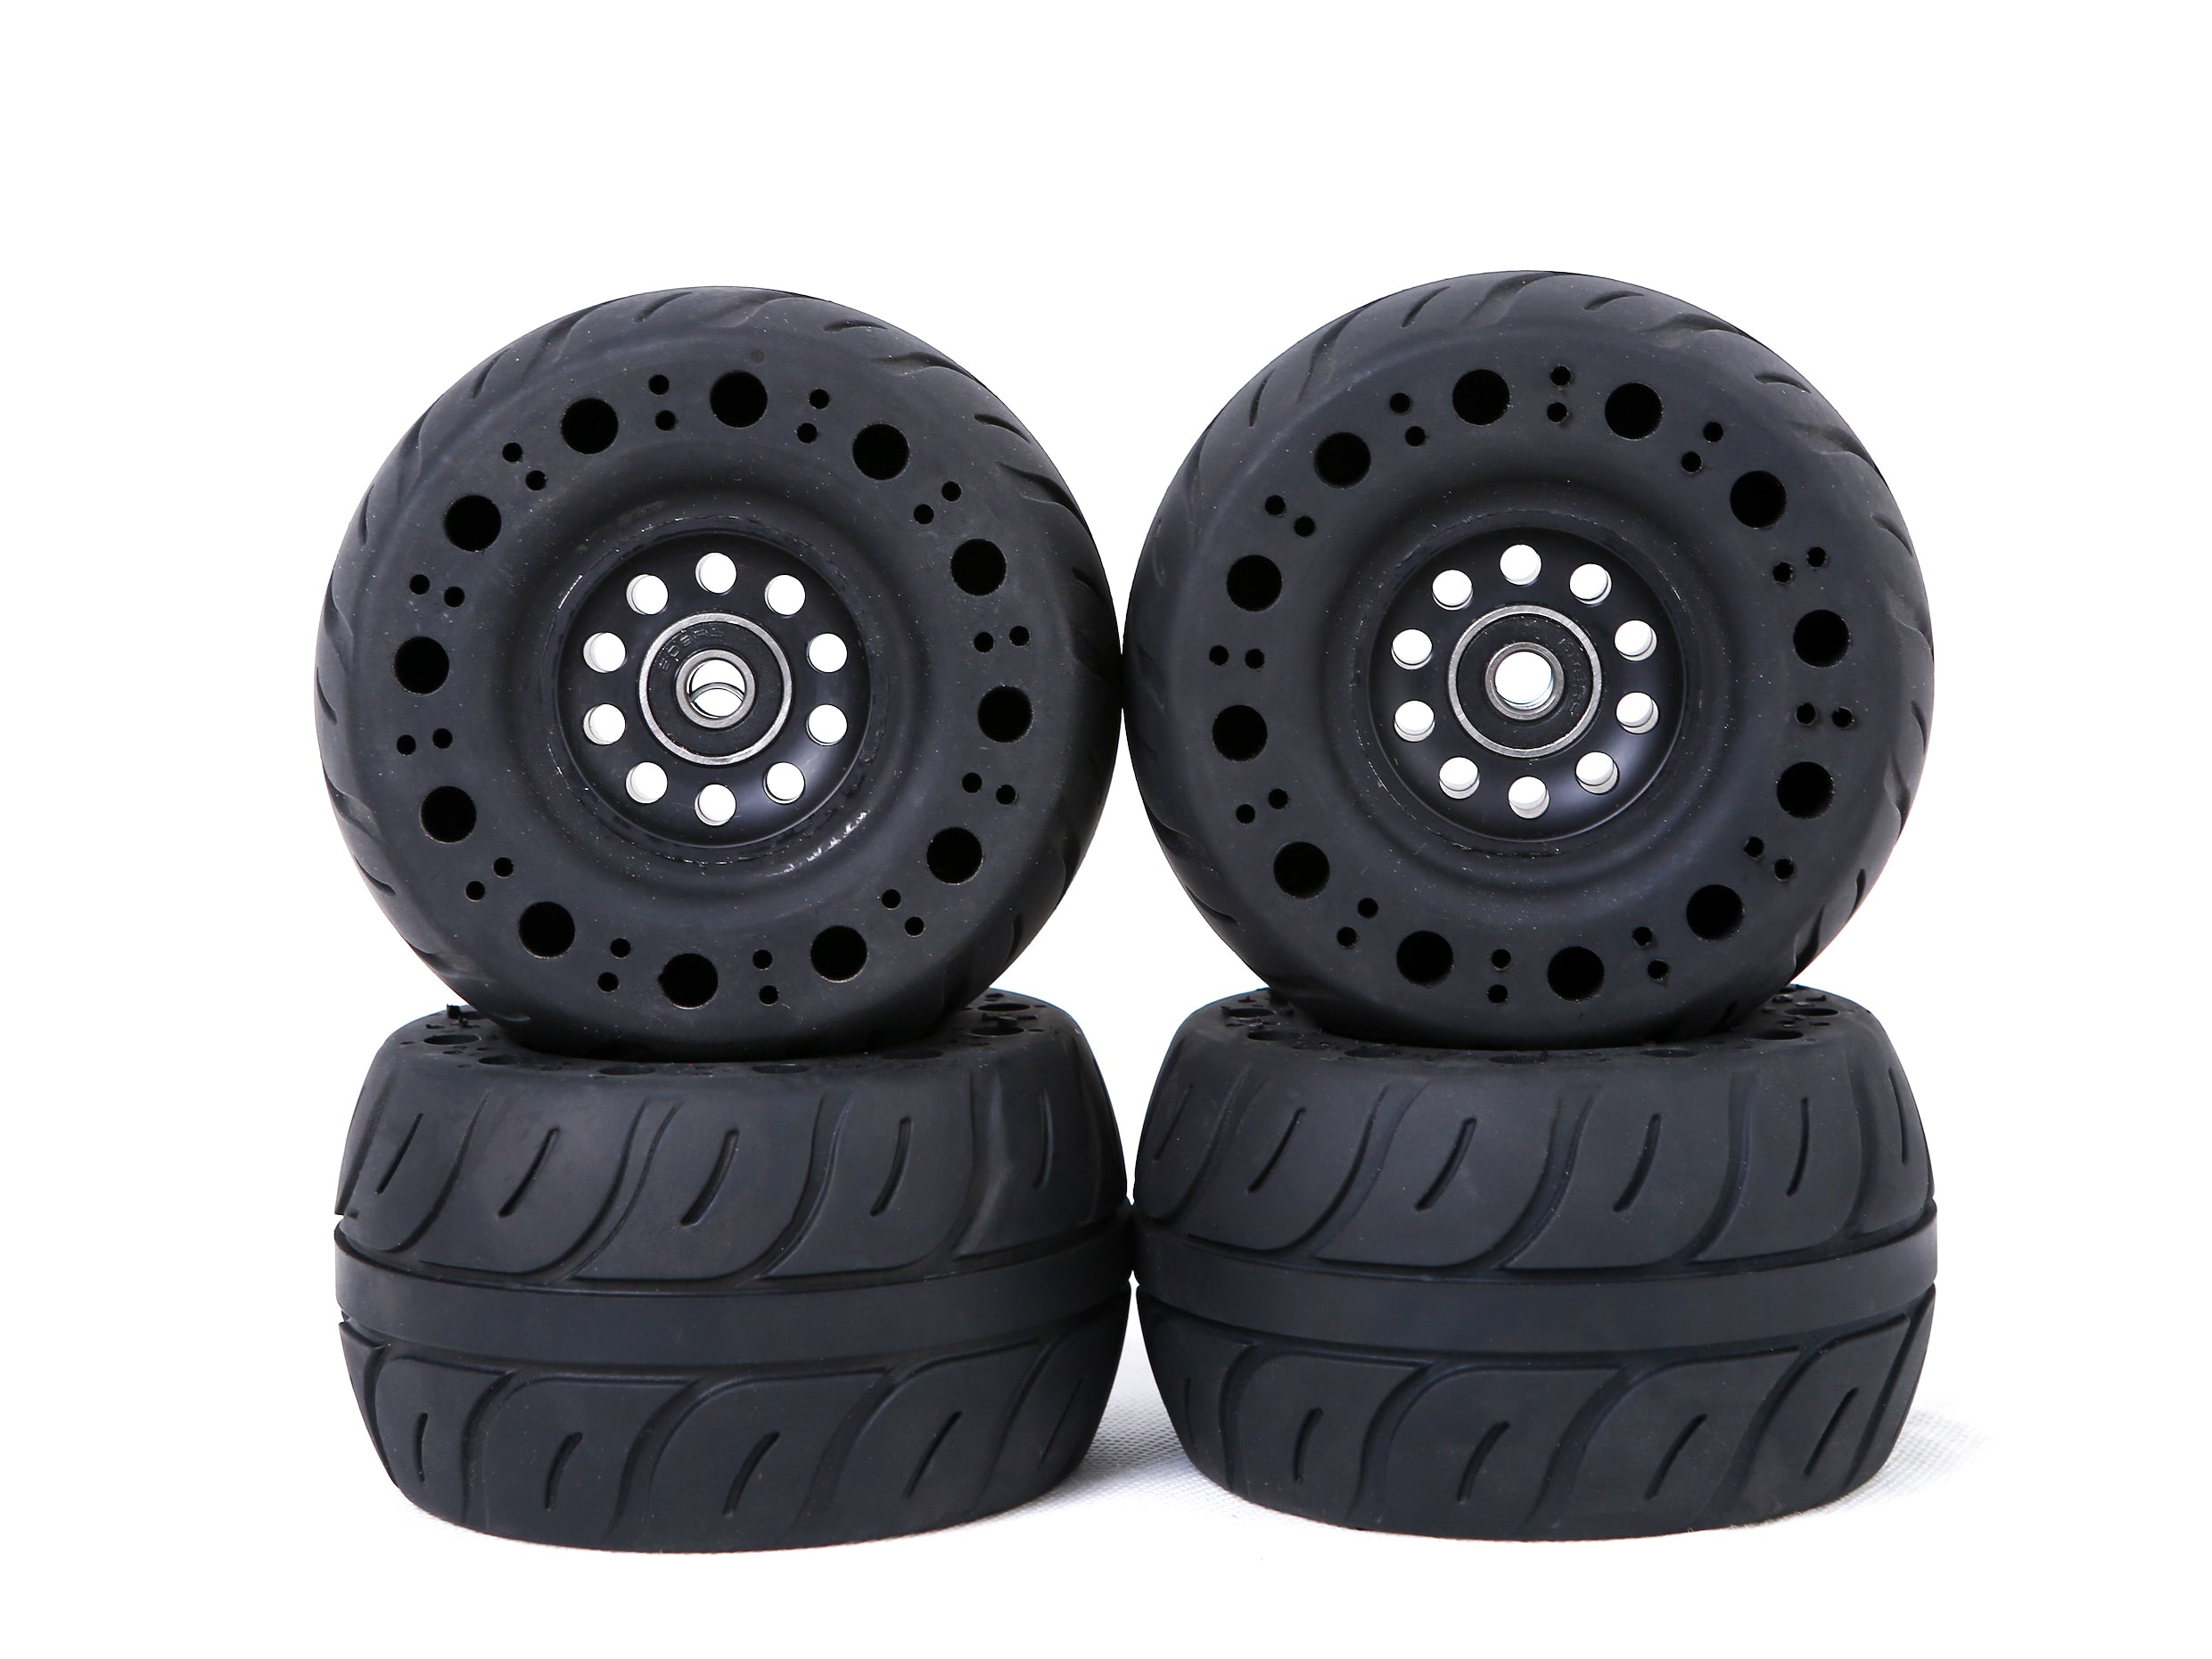 Electric Skateboard Wheels by ONSRA - 115mm Rubber Airless